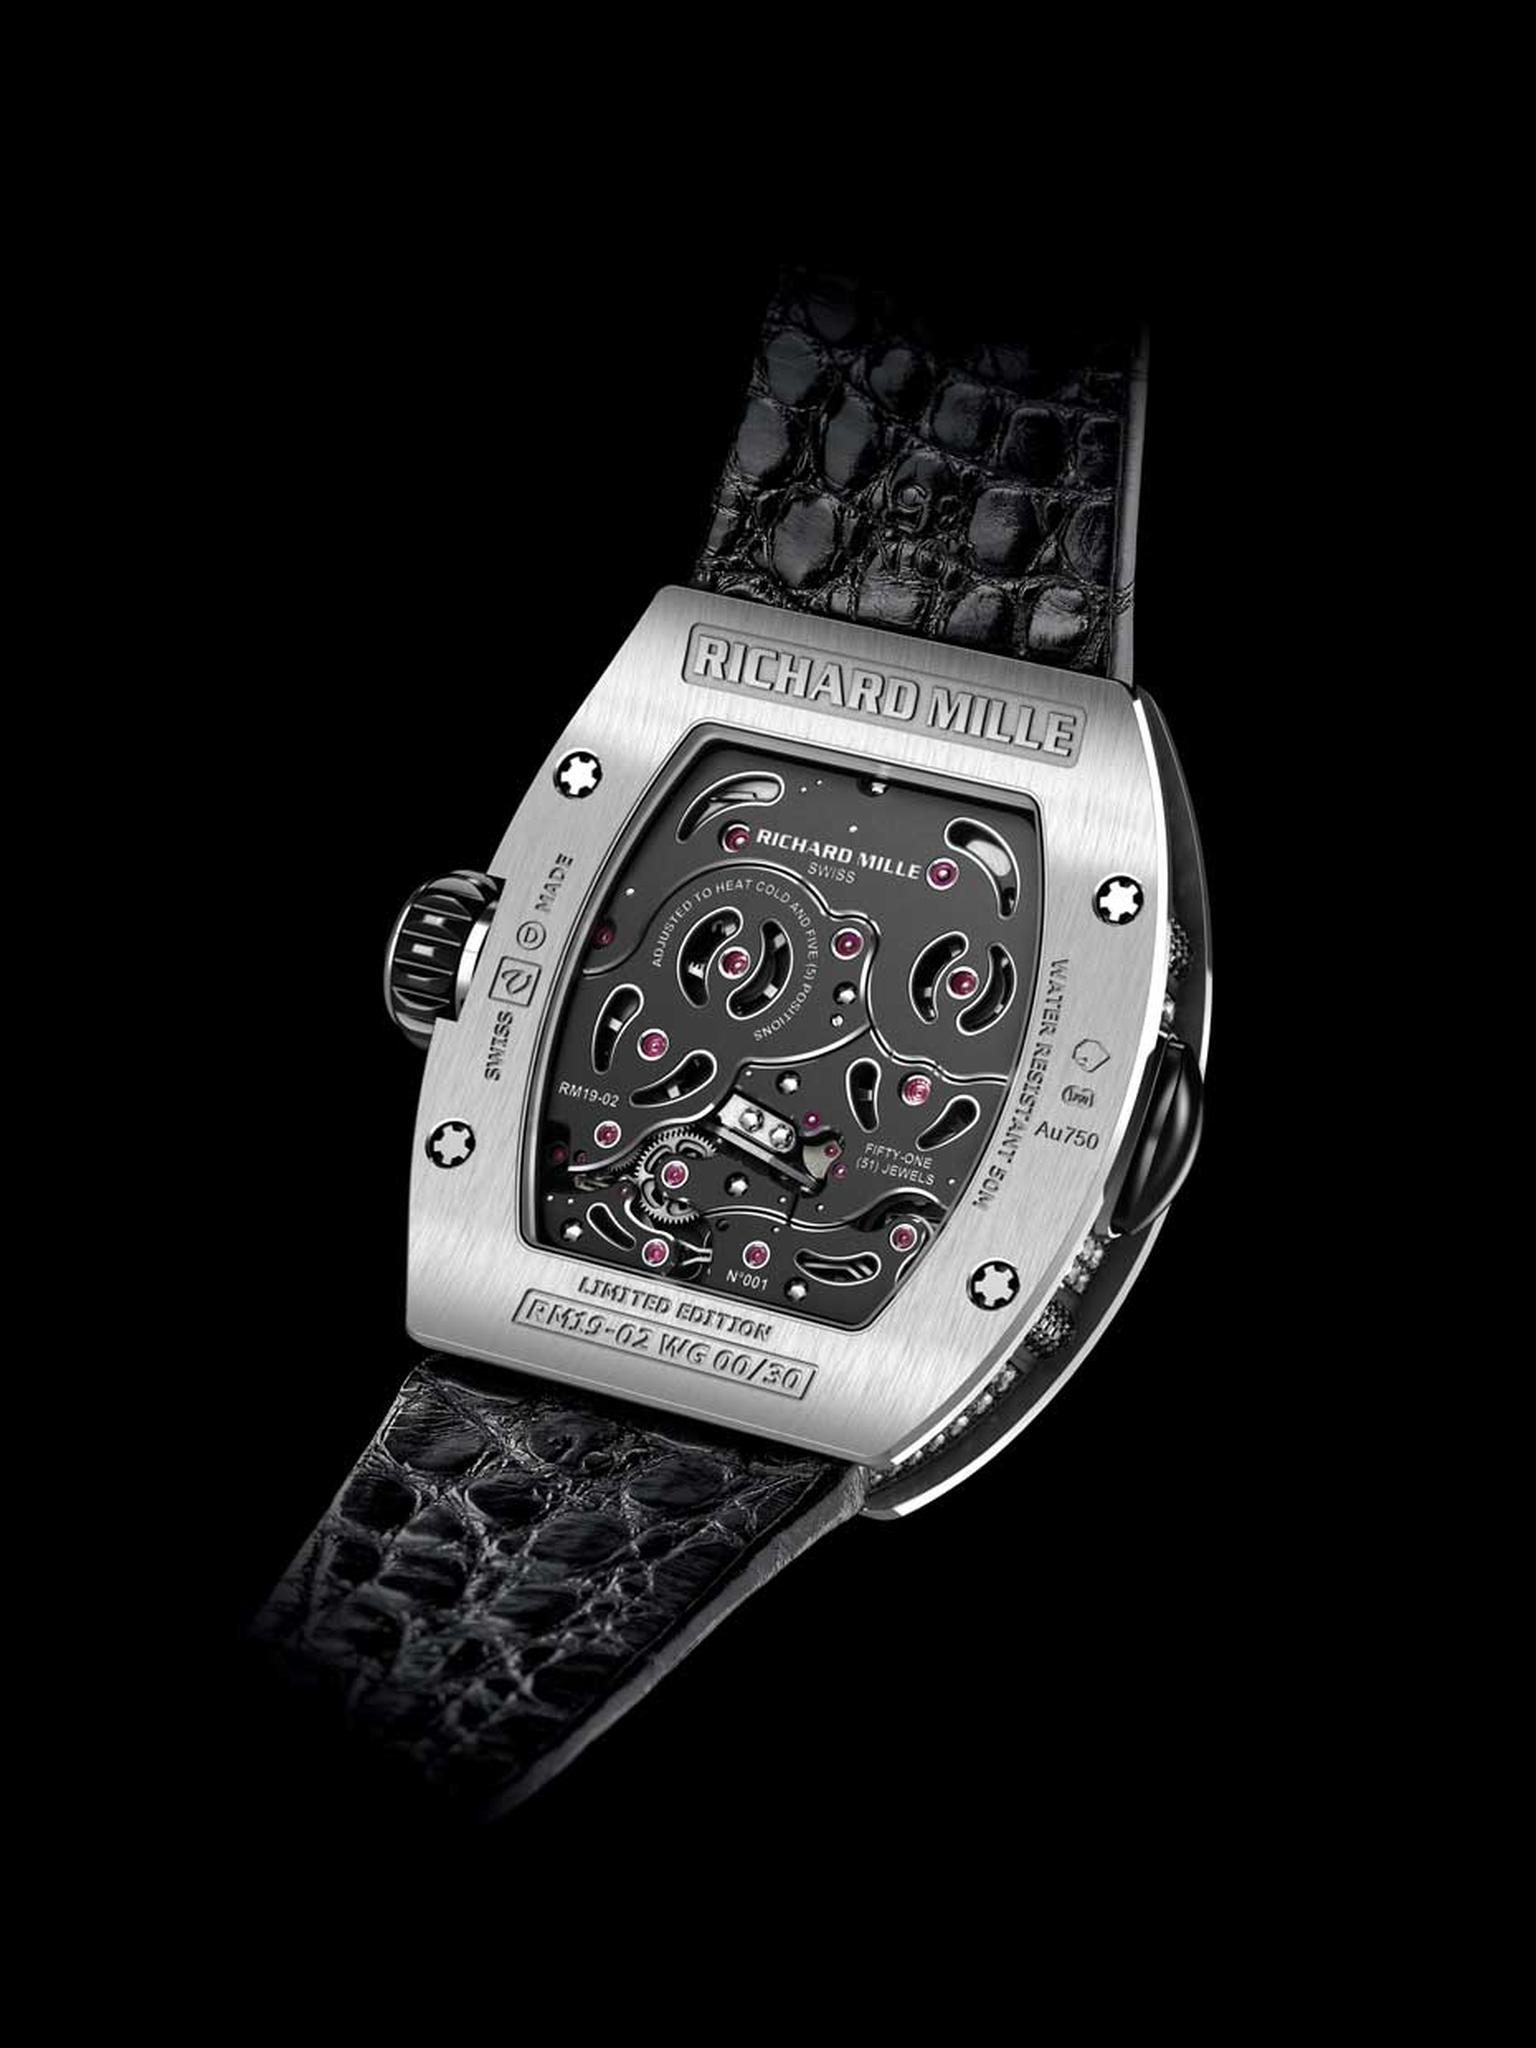 The tonneau-shaped case, made of three different layers, is a hallmark of Richard Mille watches and houses calibre RM19-02, a manual-winding tourbillon movement with hours, minutes and an automaton mechanism.